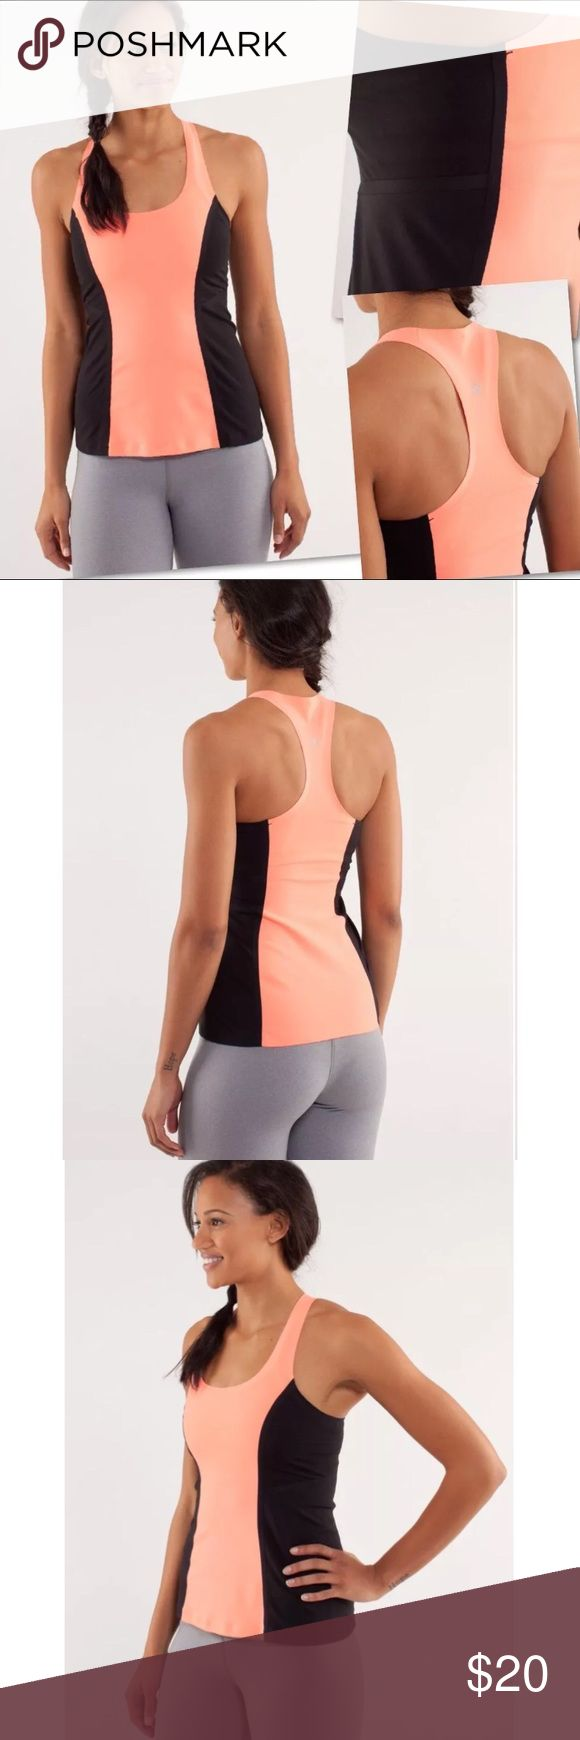 """LULULEMON COOL RACERBACK SURF BONDED TANK TOP SZ 4 LULULEMON COOL RACERBACK SURF BONDED TANK TOP SZ 4 - 32-36"""" BUST 24"""" LENGTH  COLOR IS DEFINITELY THE COLOR OF THE STOCK PHOTOS. I COULDN'T GET THE RIGHT COLOR WITH MY PHONE. lululemon athletica Tops Tank Tops"""